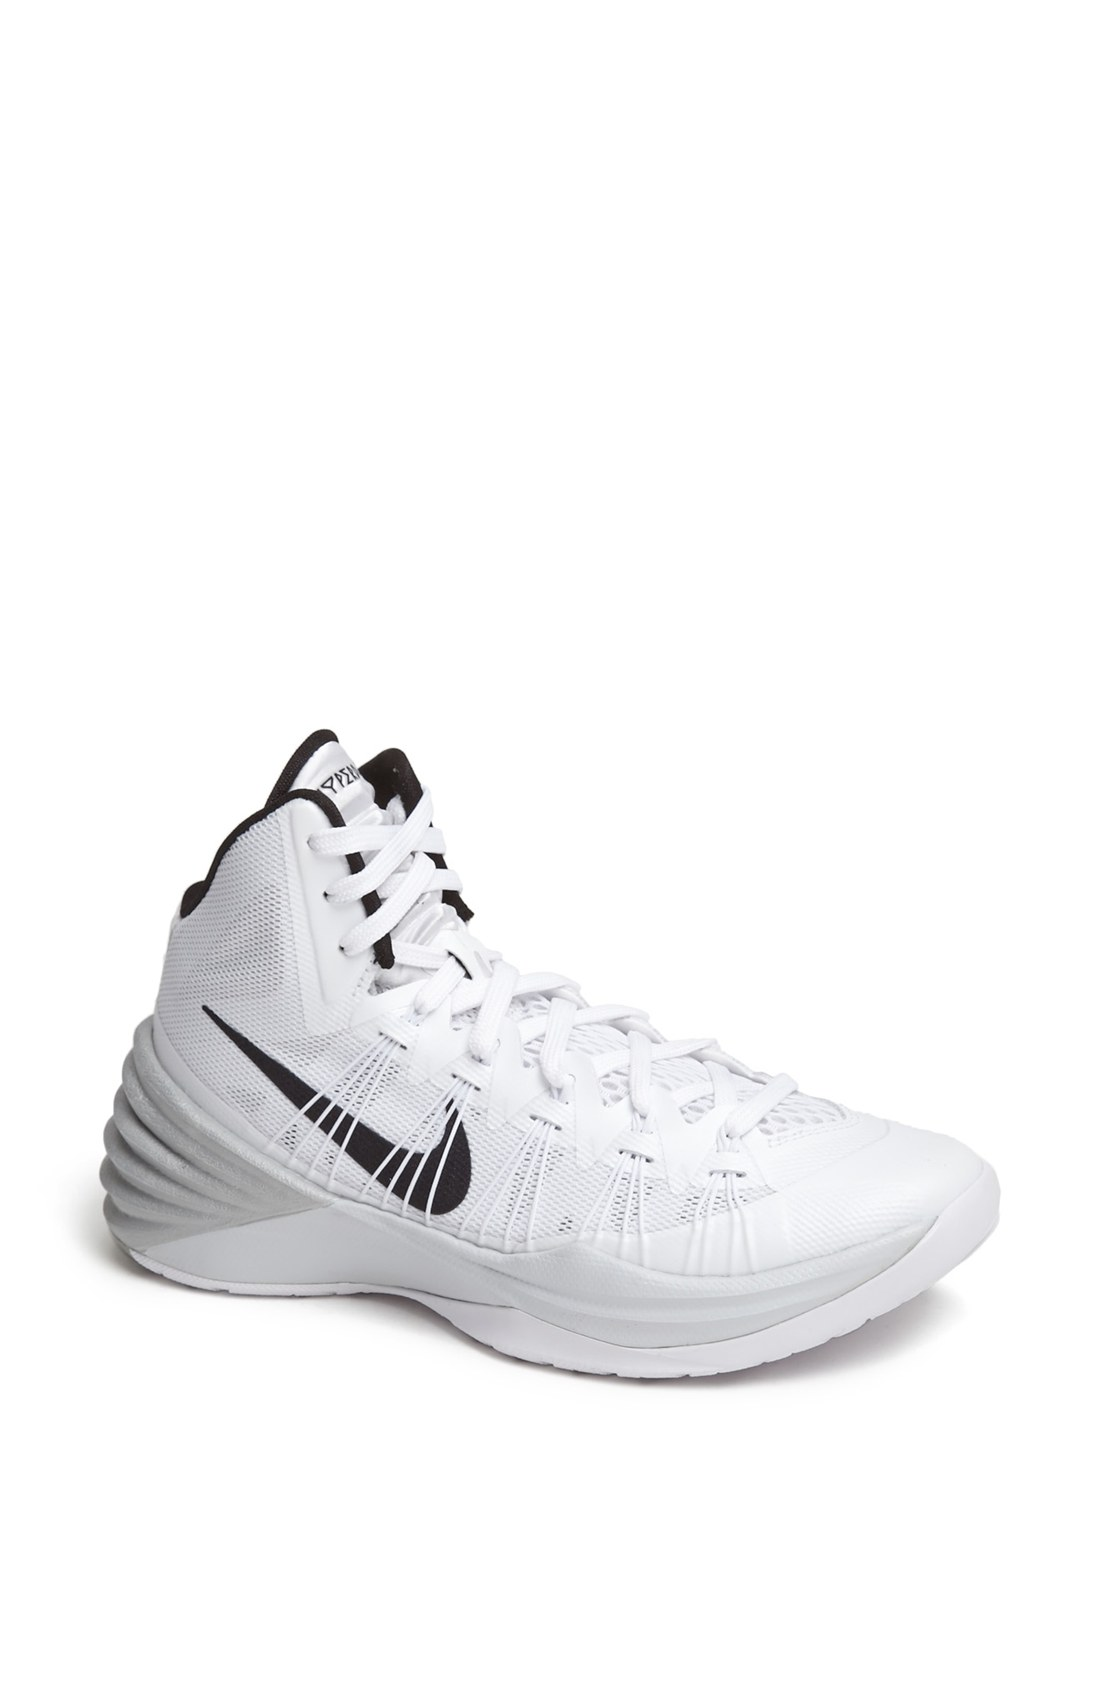 Nike Sneakers | Women's High Tops & Trainers | Lyst